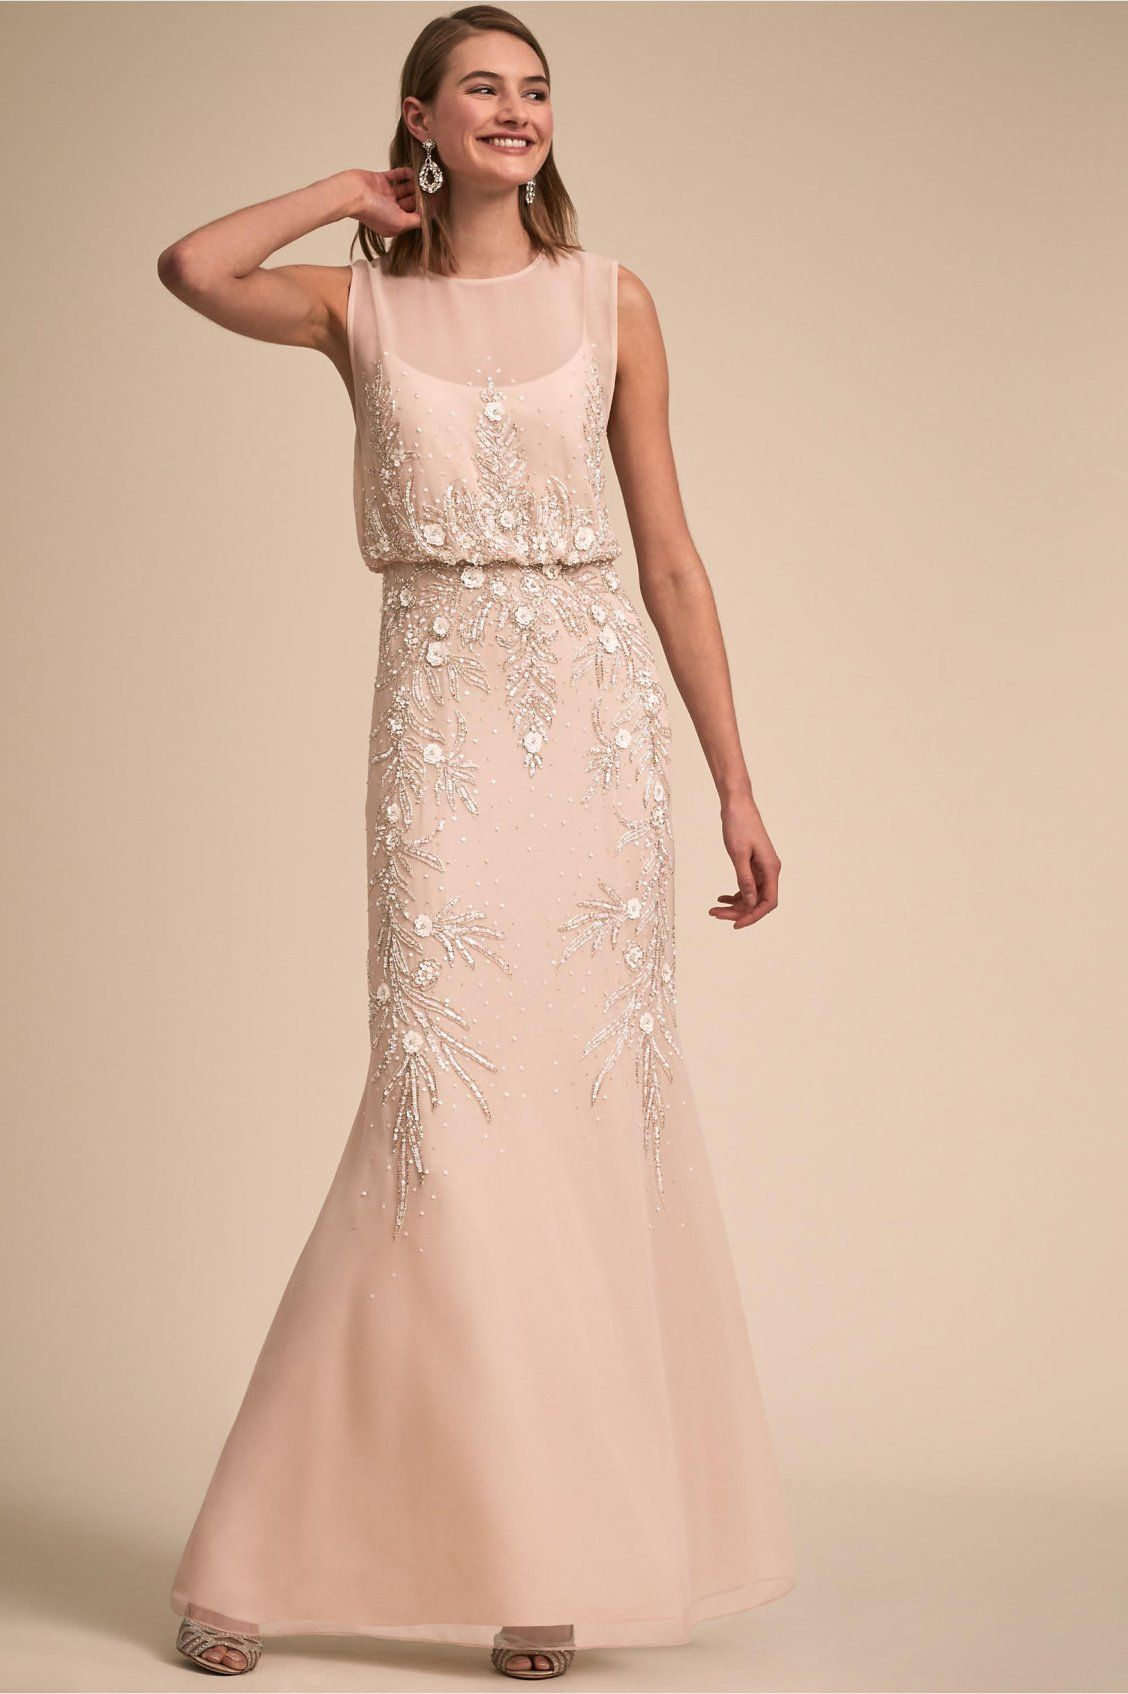 b14f87e50837 Devon Dress from BHLDN | Embellished Wedding Dresses & Ideas | Bhldn ...